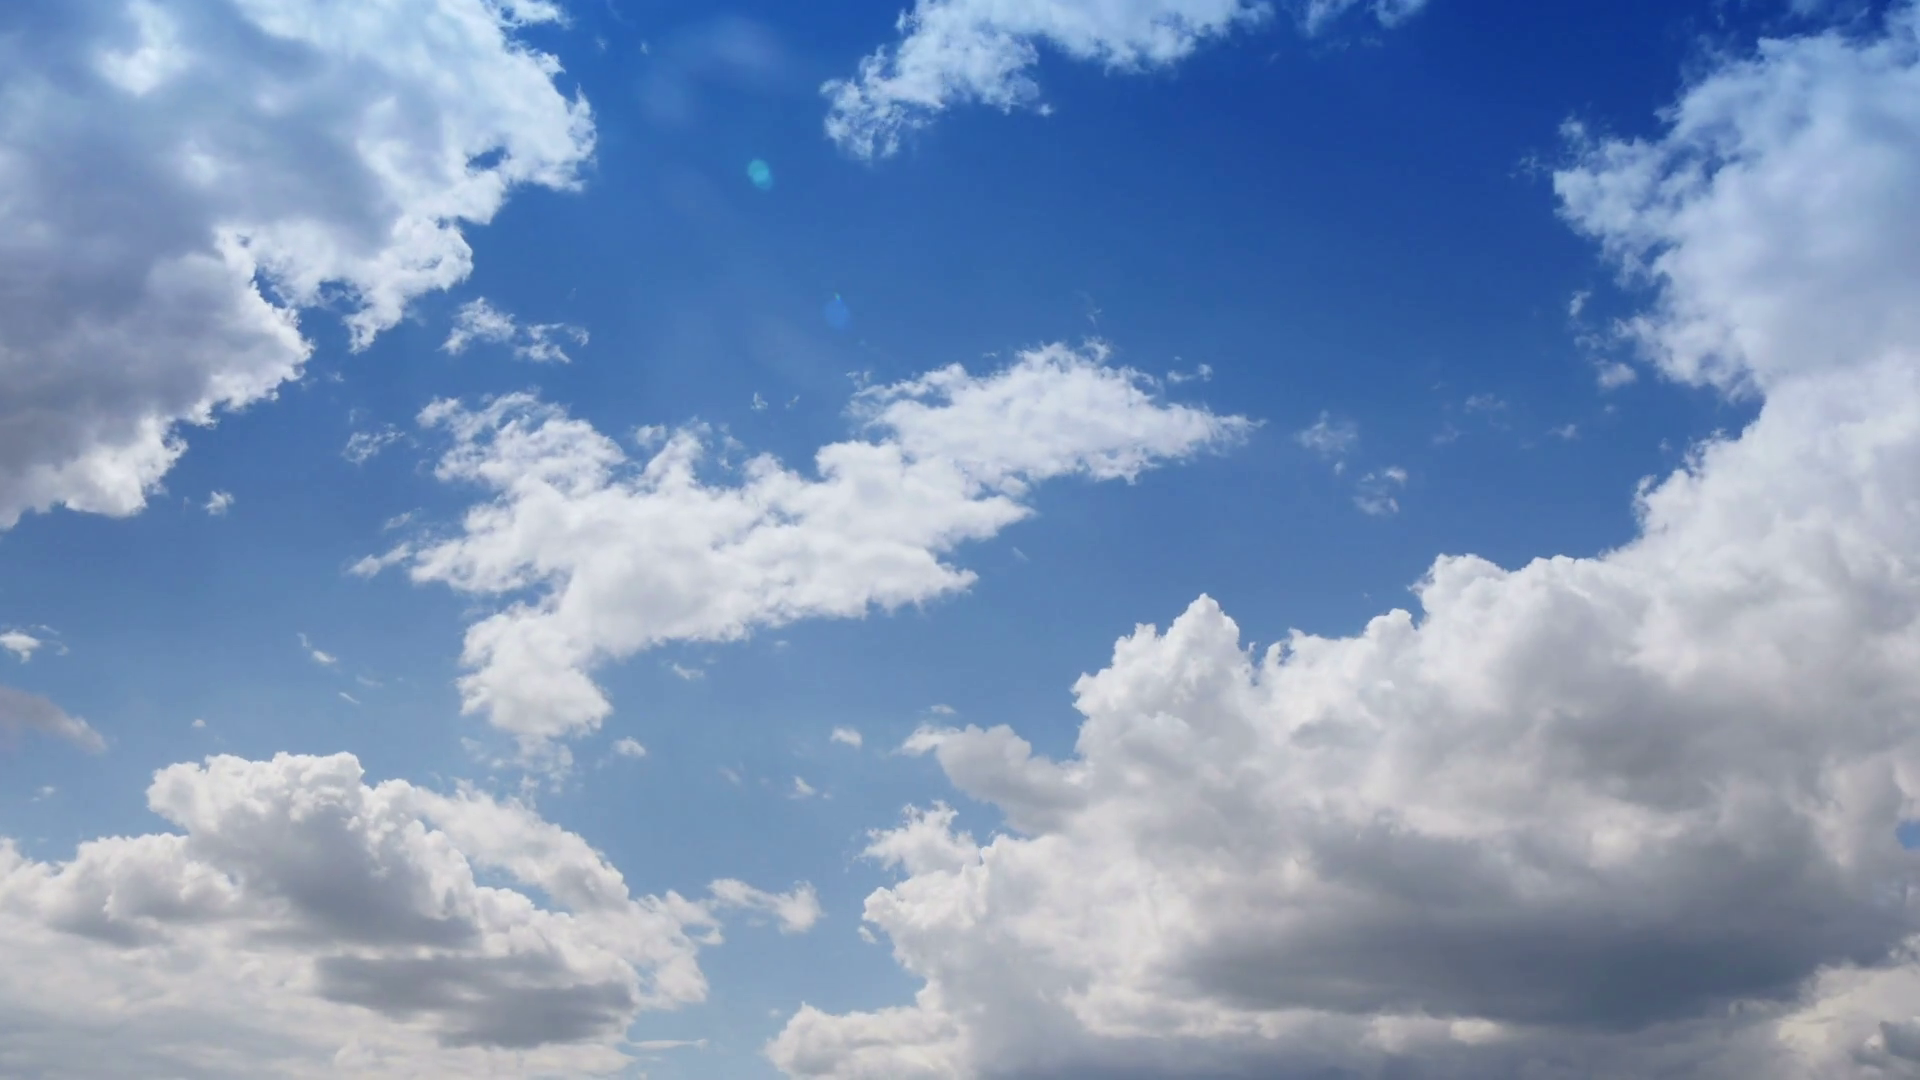 sun comes out of the clouds, sunny sky, taymlaps Stock Video Footage.